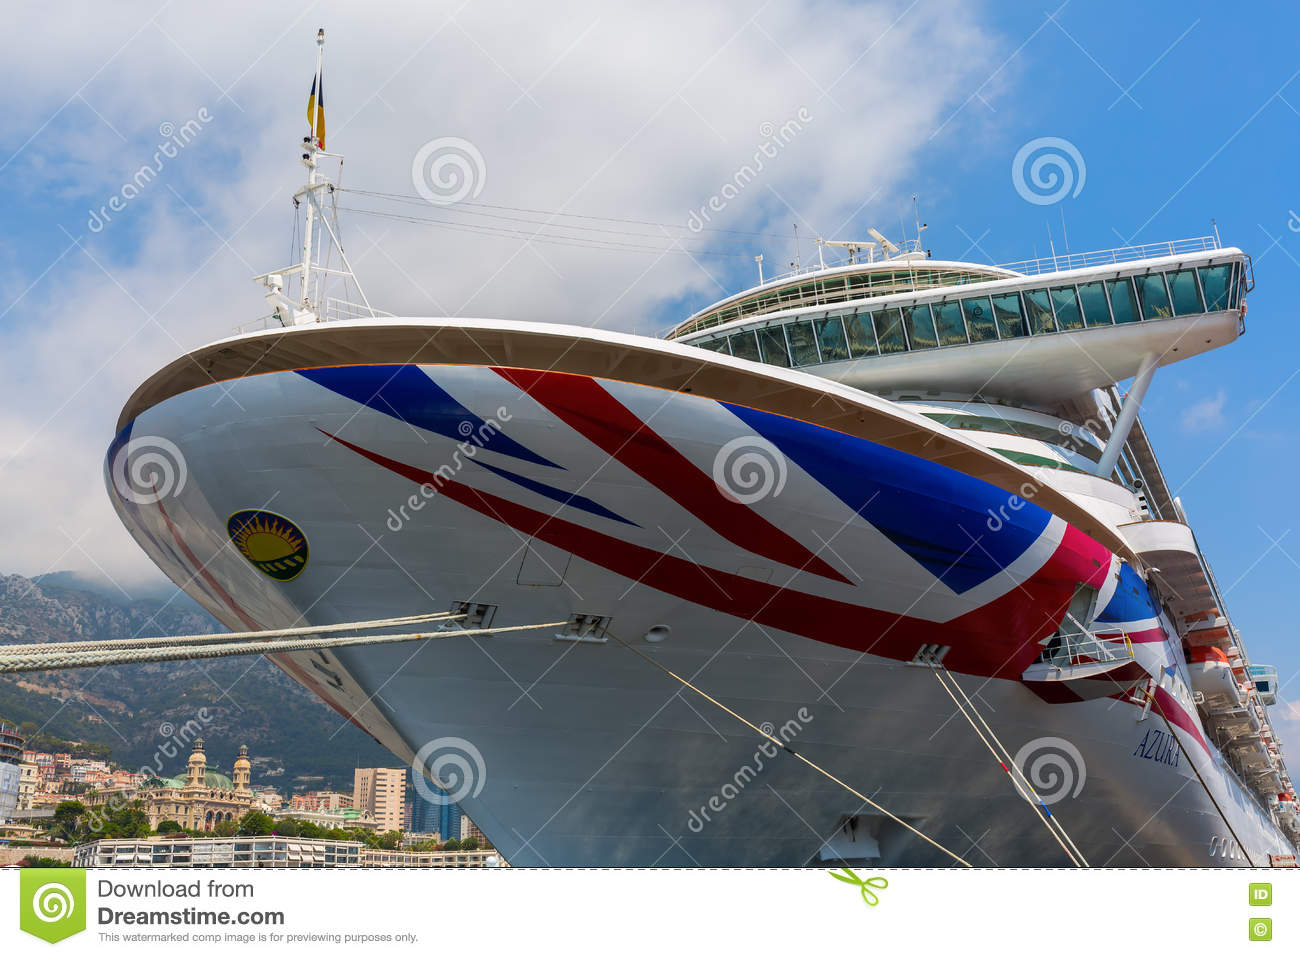 What are the largest cruise liners currently in service?